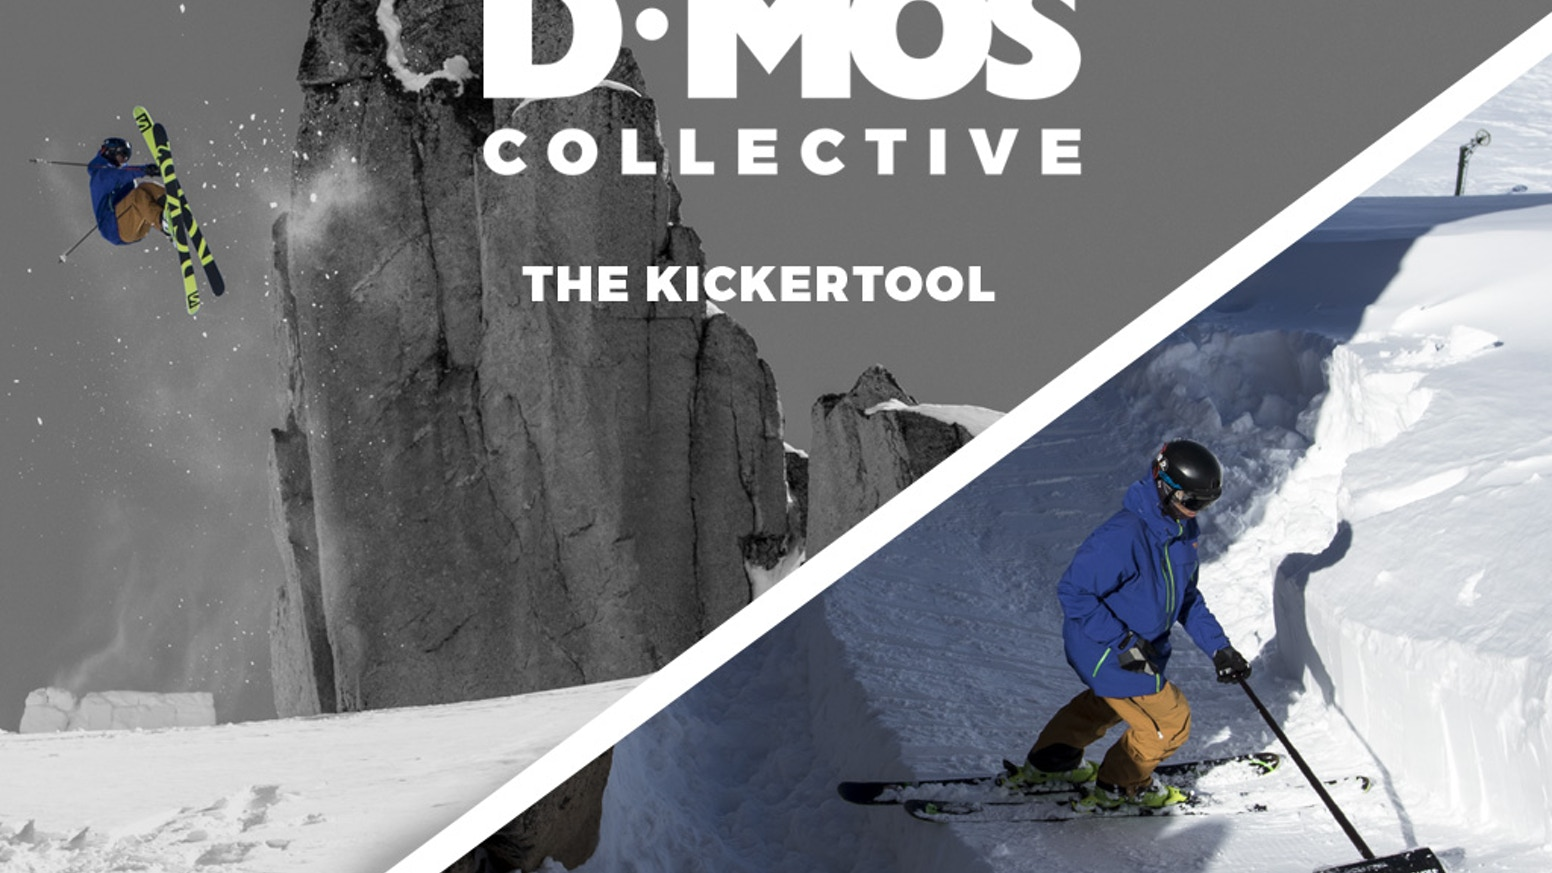 The Kicker Tool™ is the ultimate terrain-building snow shovel for ski and snowboard athletes: purpose-designed, rugged, and packable.